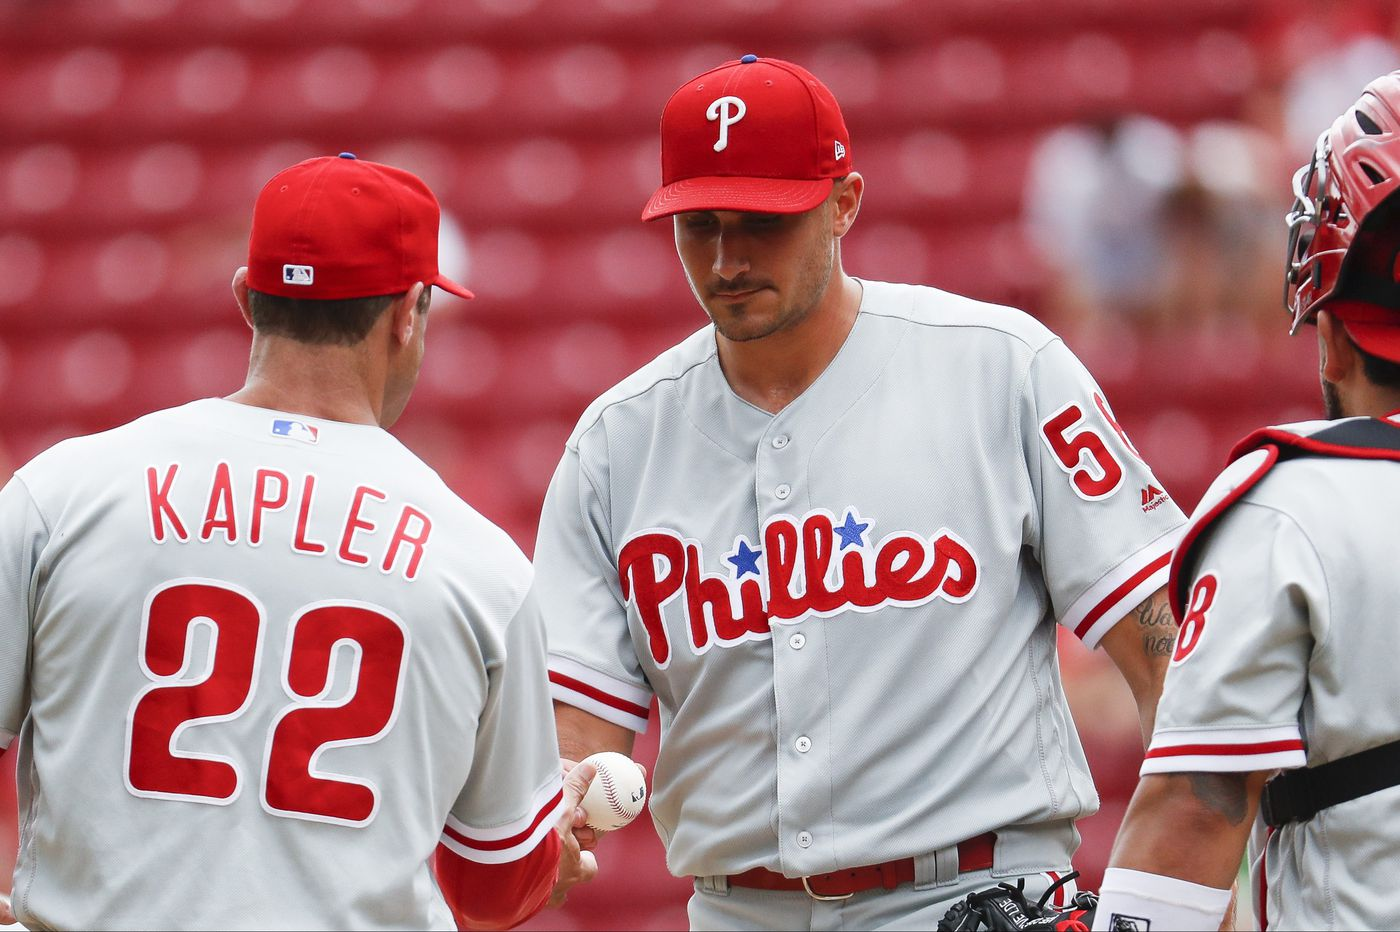 Phillies get shut out by Reds for third straight loss